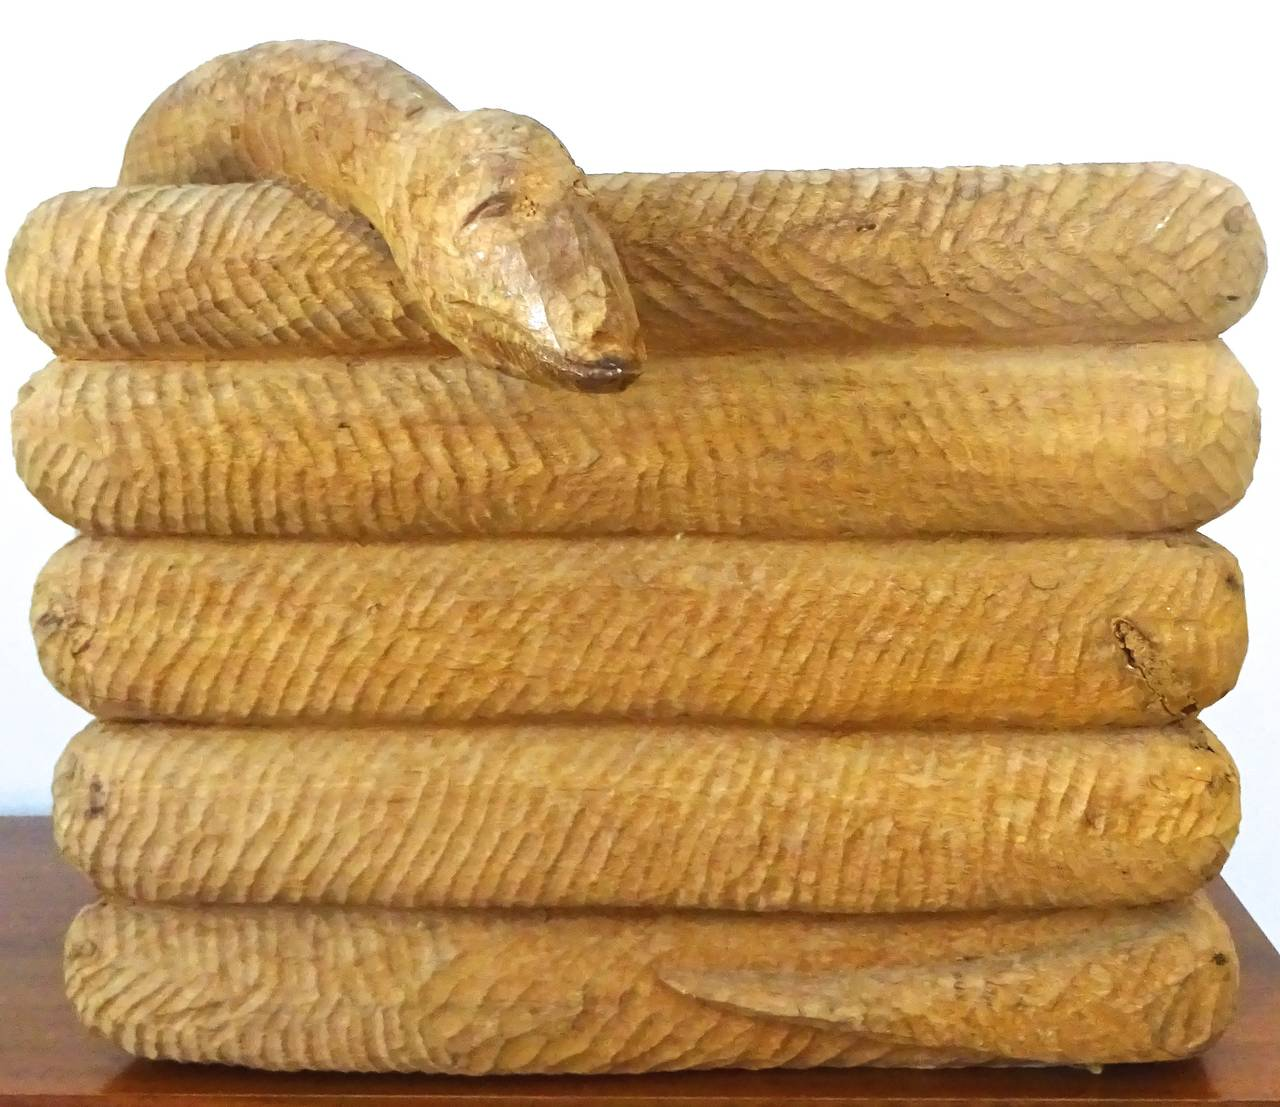 S carved wood coiled snake trough with zinc liner at